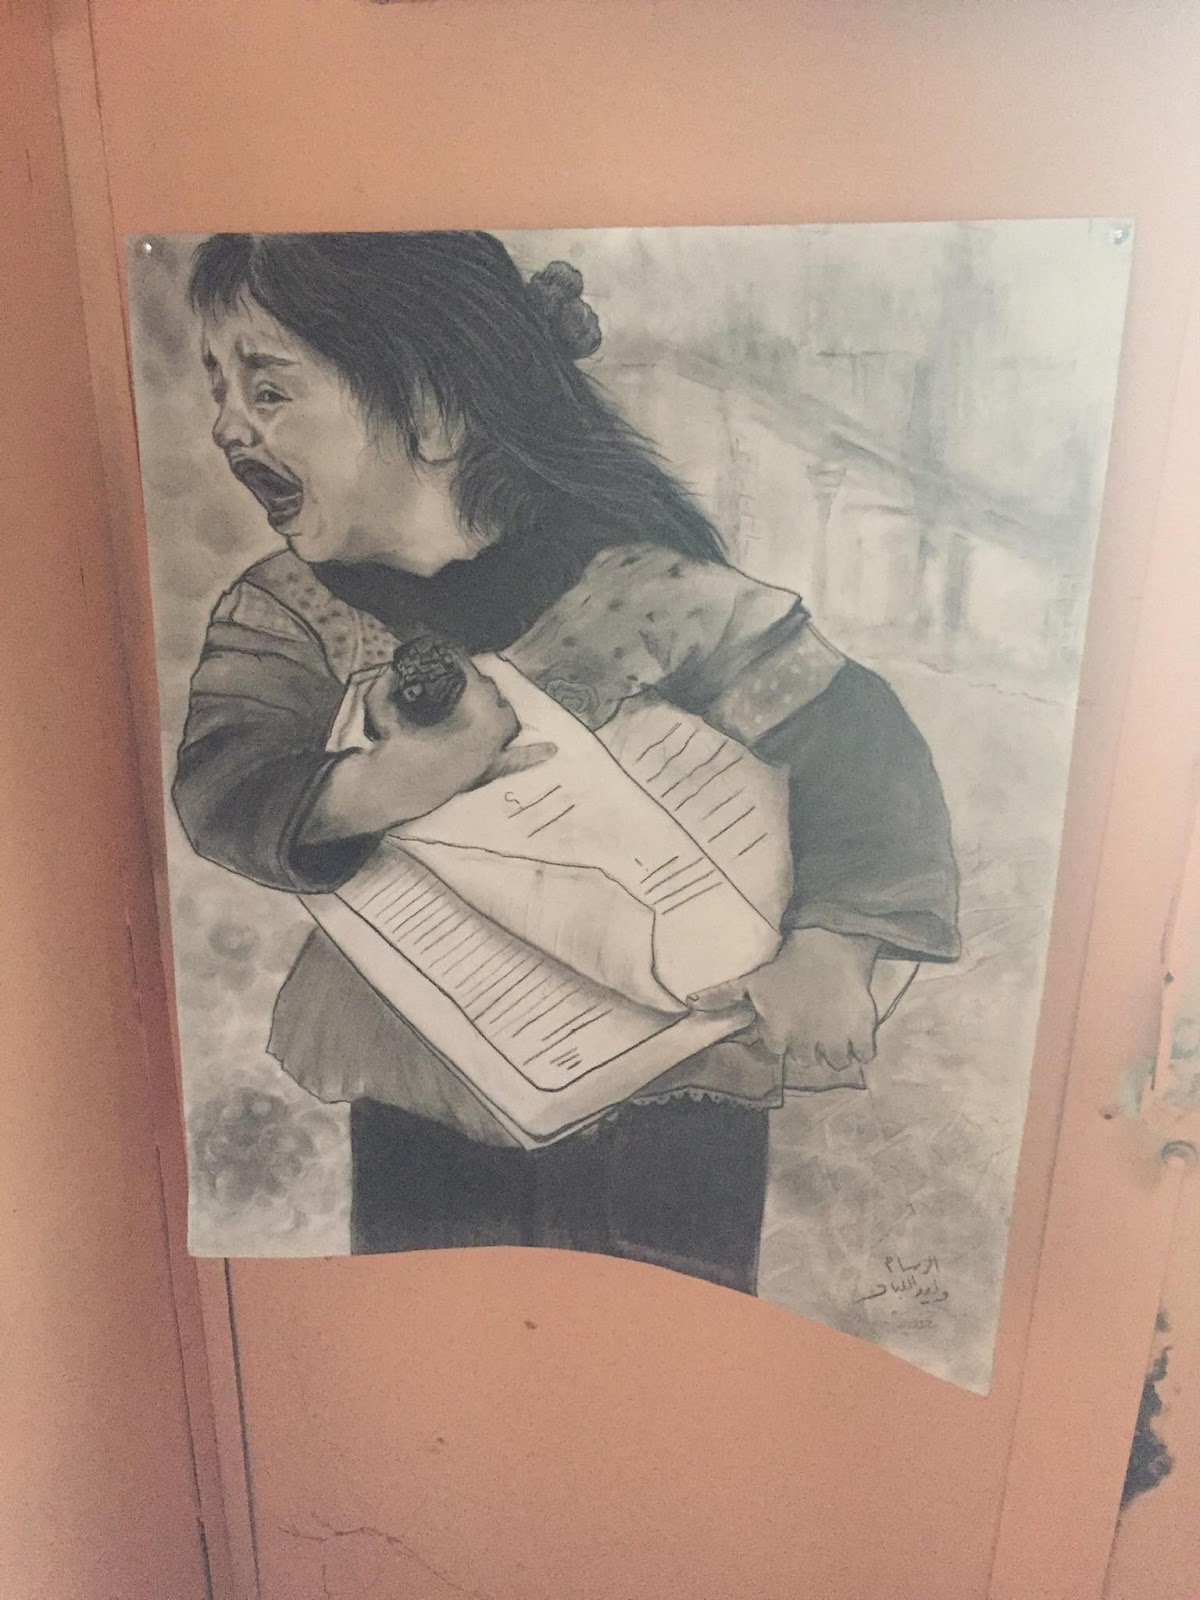 Photo by Alex Gunn showing art made by refugees in the Zaatari Refugee Camp